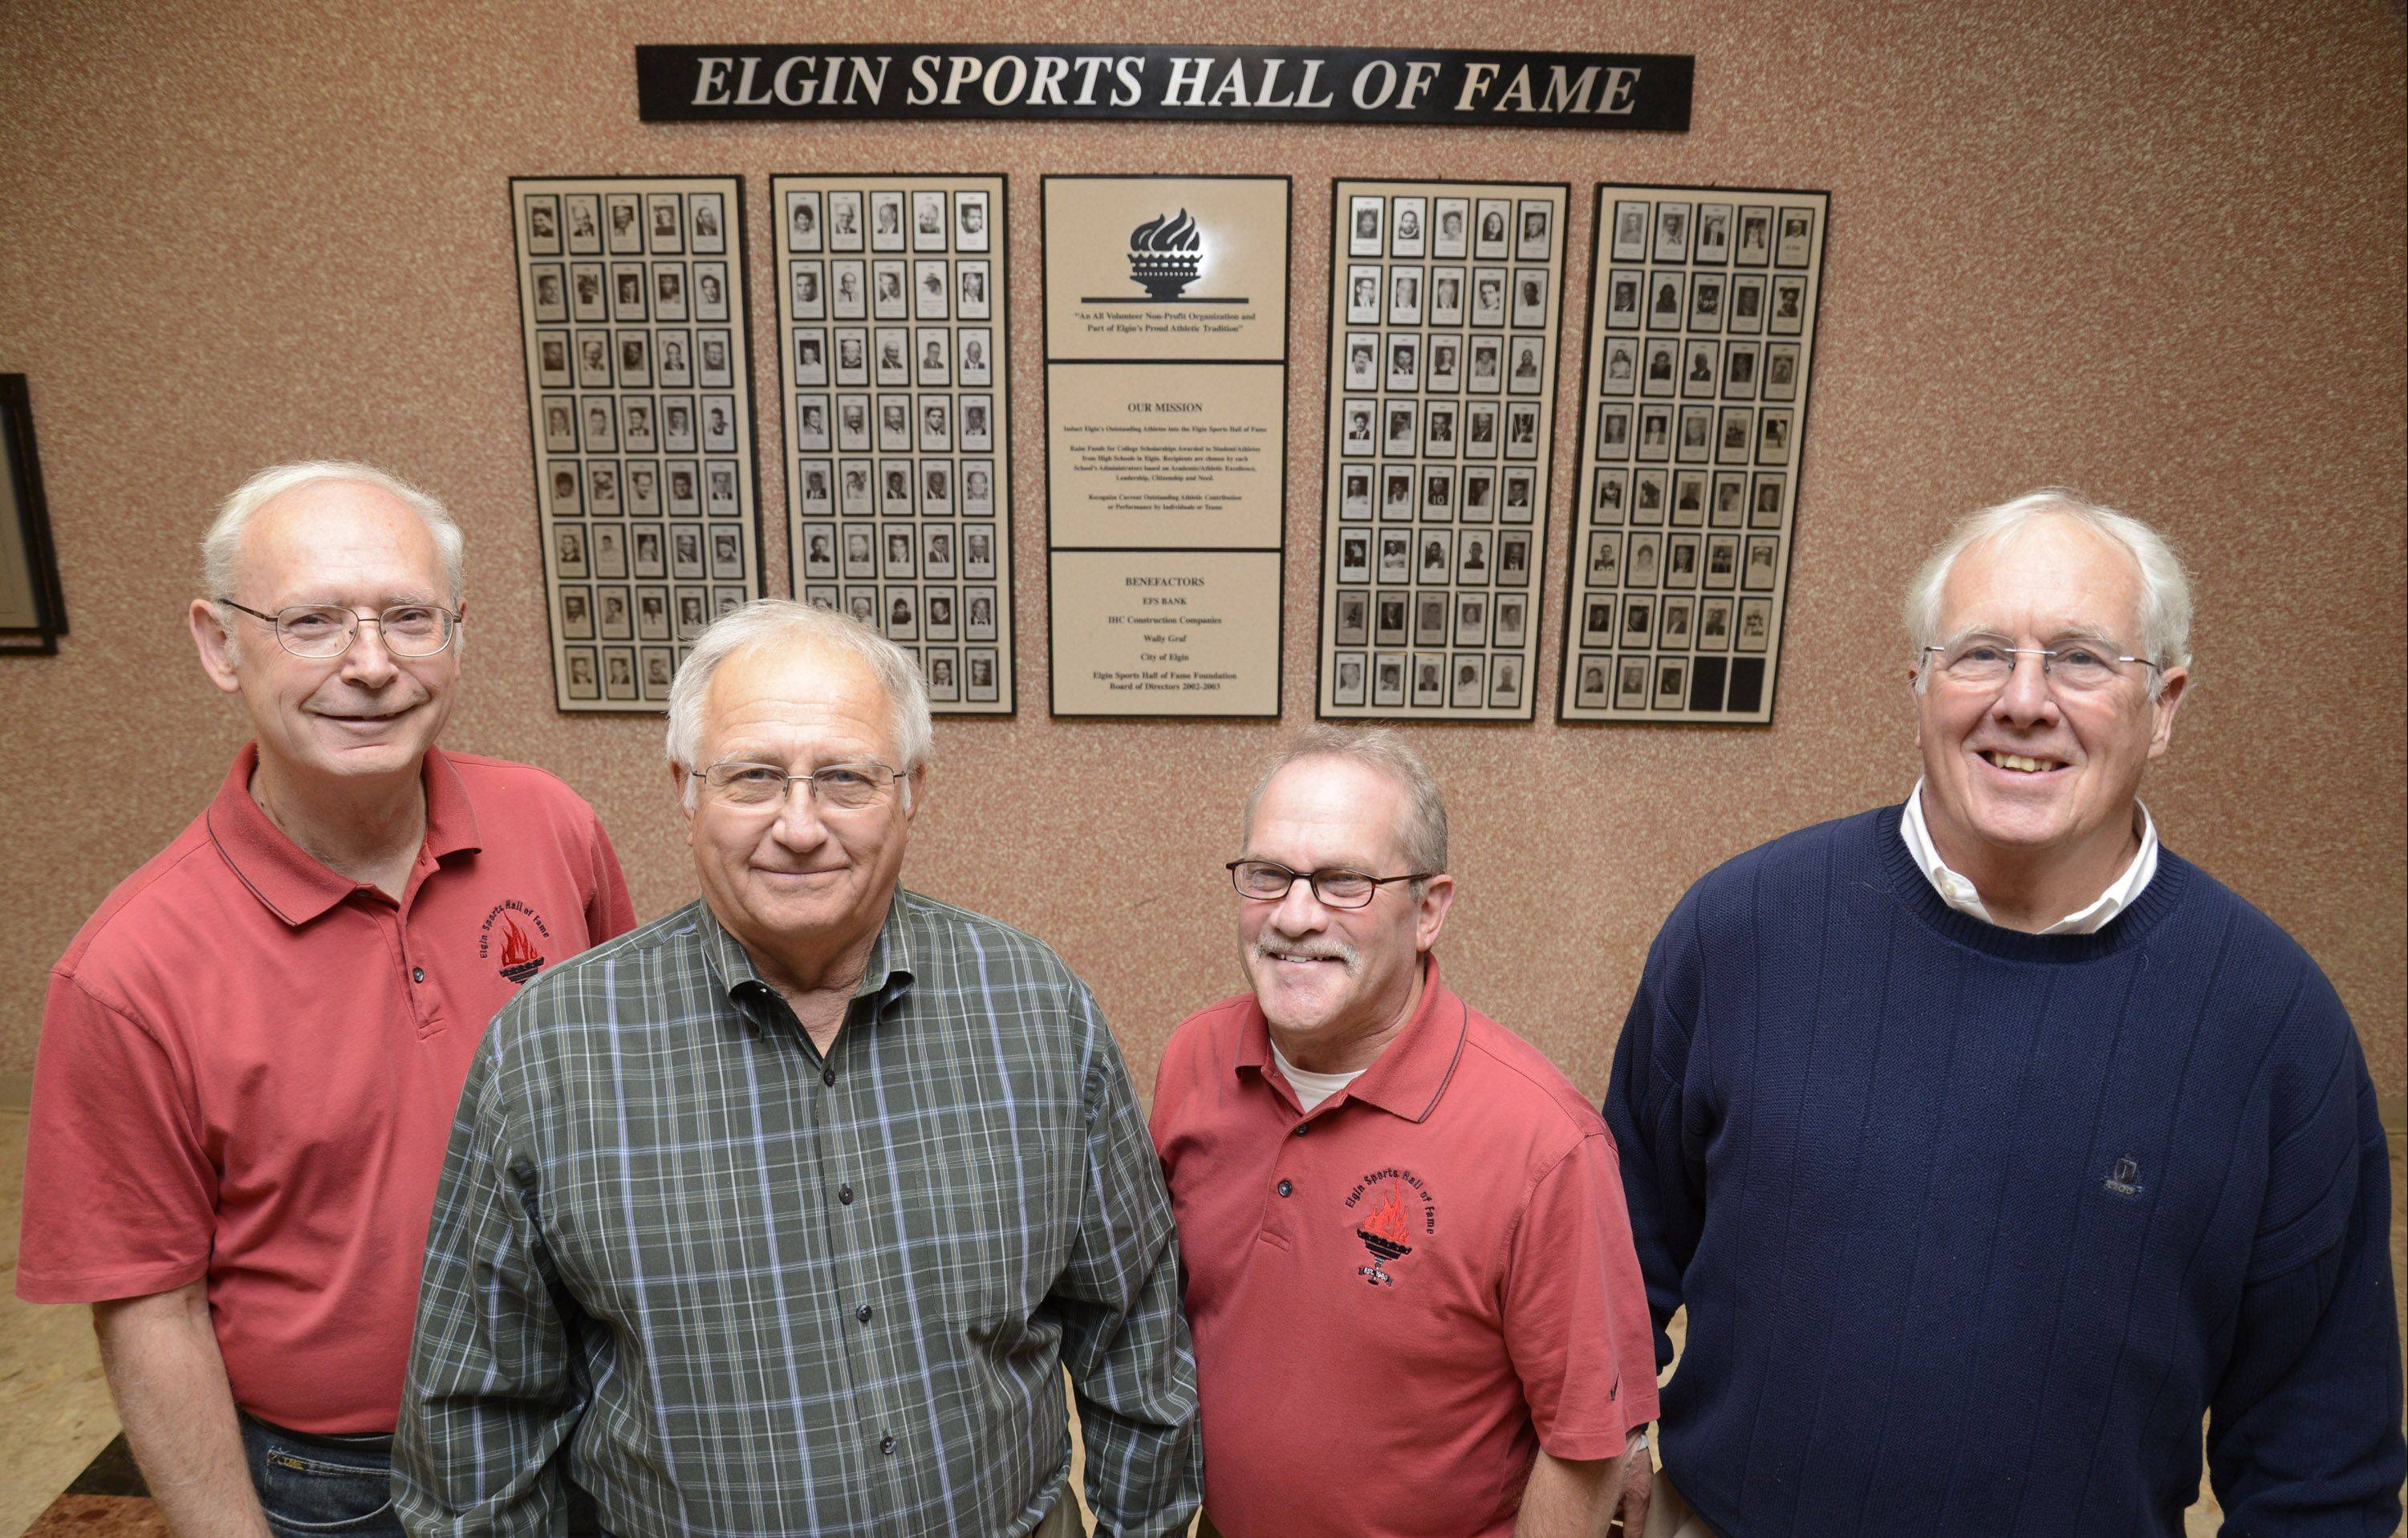 From left, current Elgin Sports Hall of Fame Foundation president Ron Lange, treasurer Dave Covey, past president Mark Sharf, and scholarship committee member Gus Vaughan pose in from of the Elgin Sports Hall of Fame's Wall of Fame at The Centre of Elgin. The foundation will hold its 34th annual induction ceremony and banquet Sunday night at The Centre.